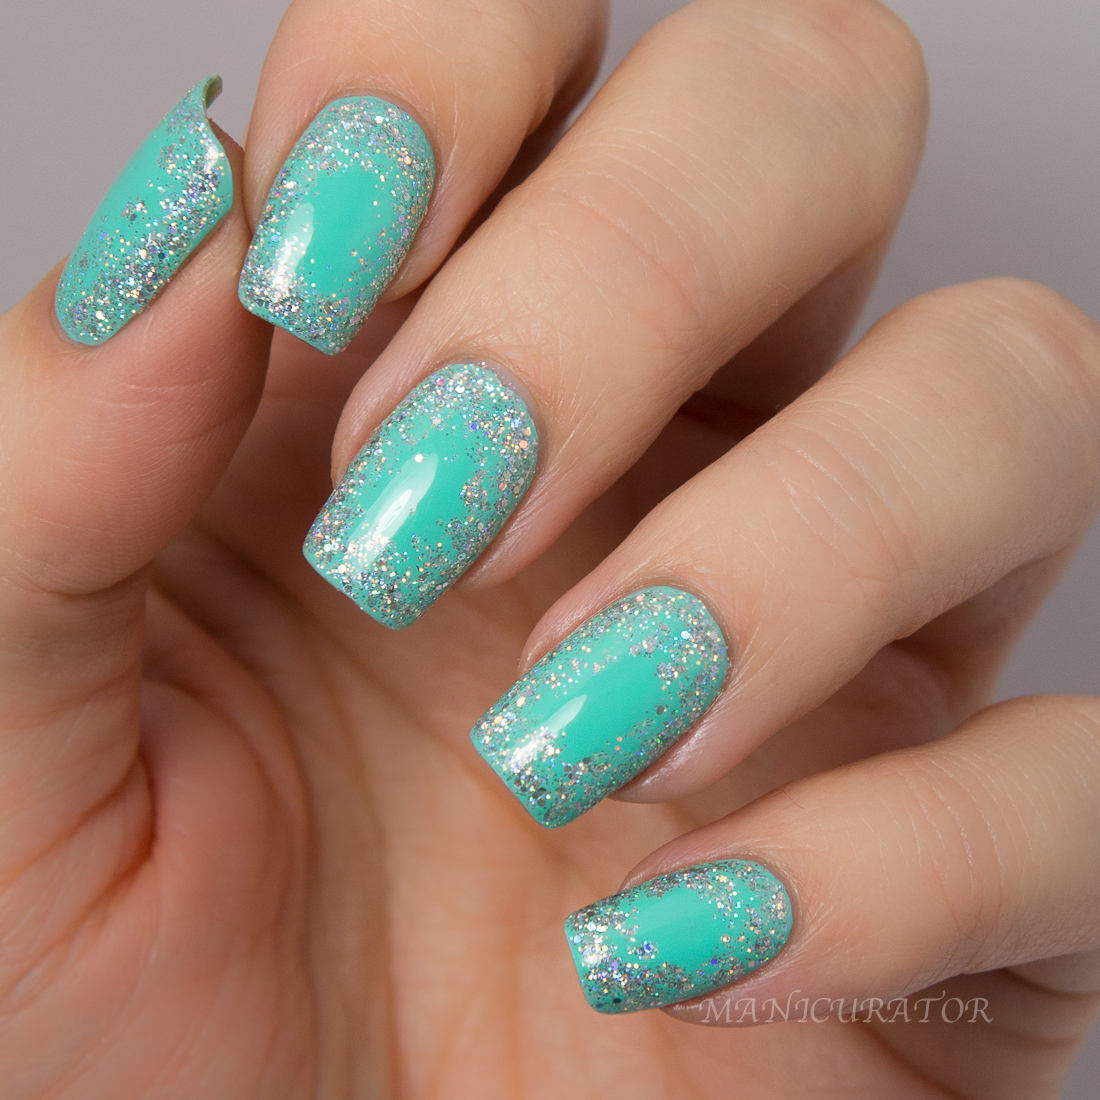 Aqua Silver Flowers Nails Designs Gardening Flower And Vegetables